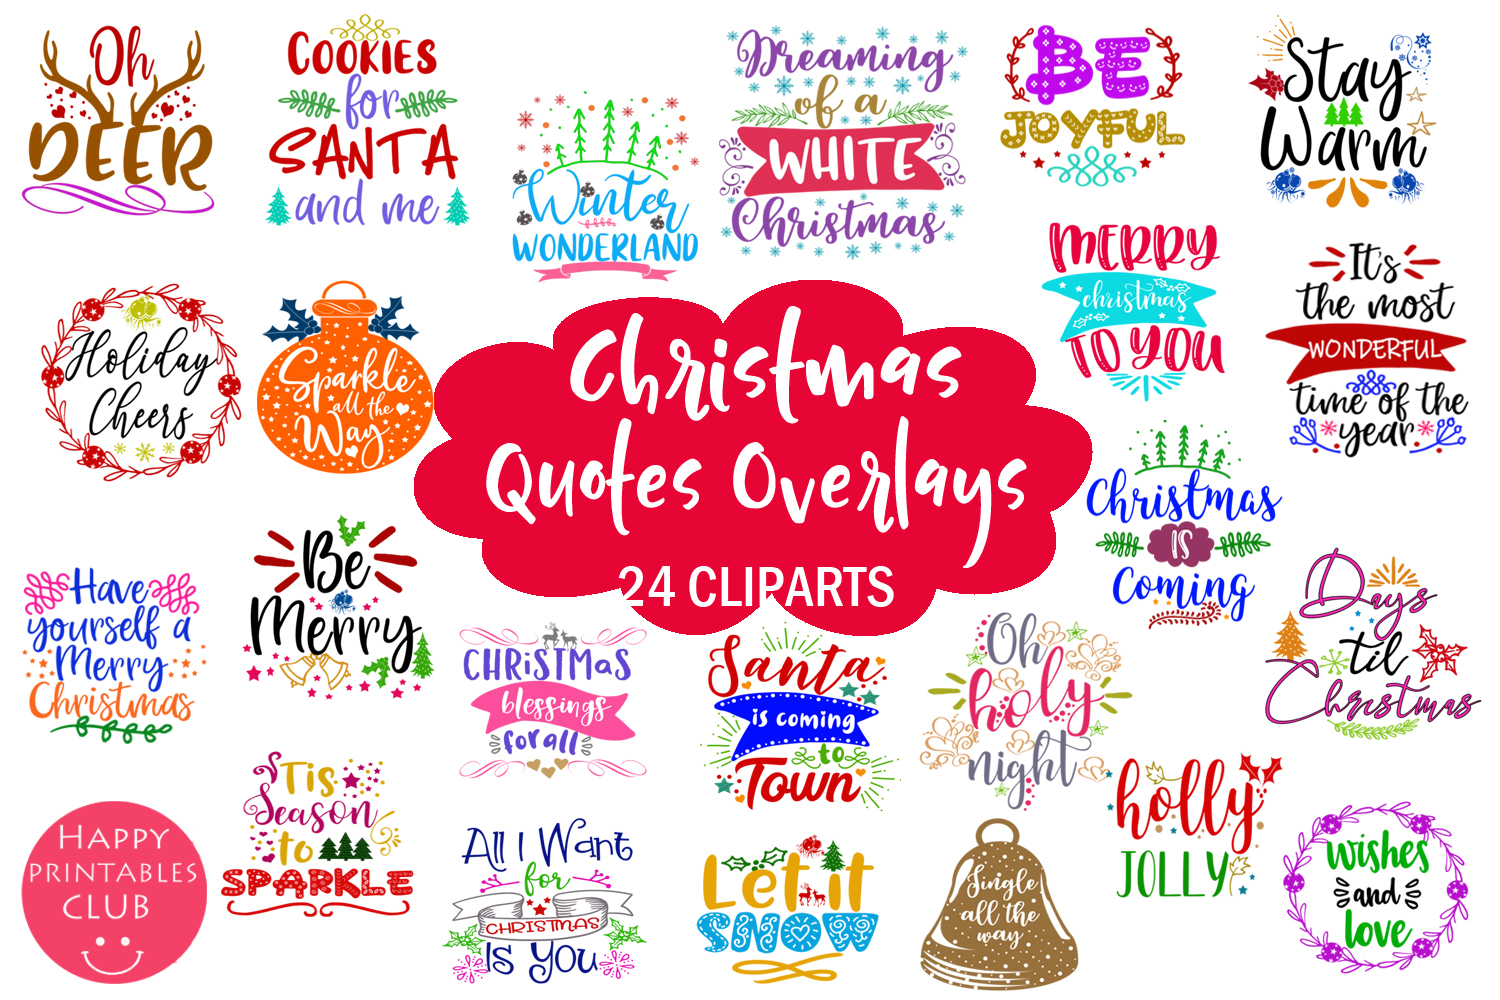 Download Free Christmas Quotes Overlays Text Overlays Graphic By Happy for Cricut Explore, Silhouette and other cutting machines.